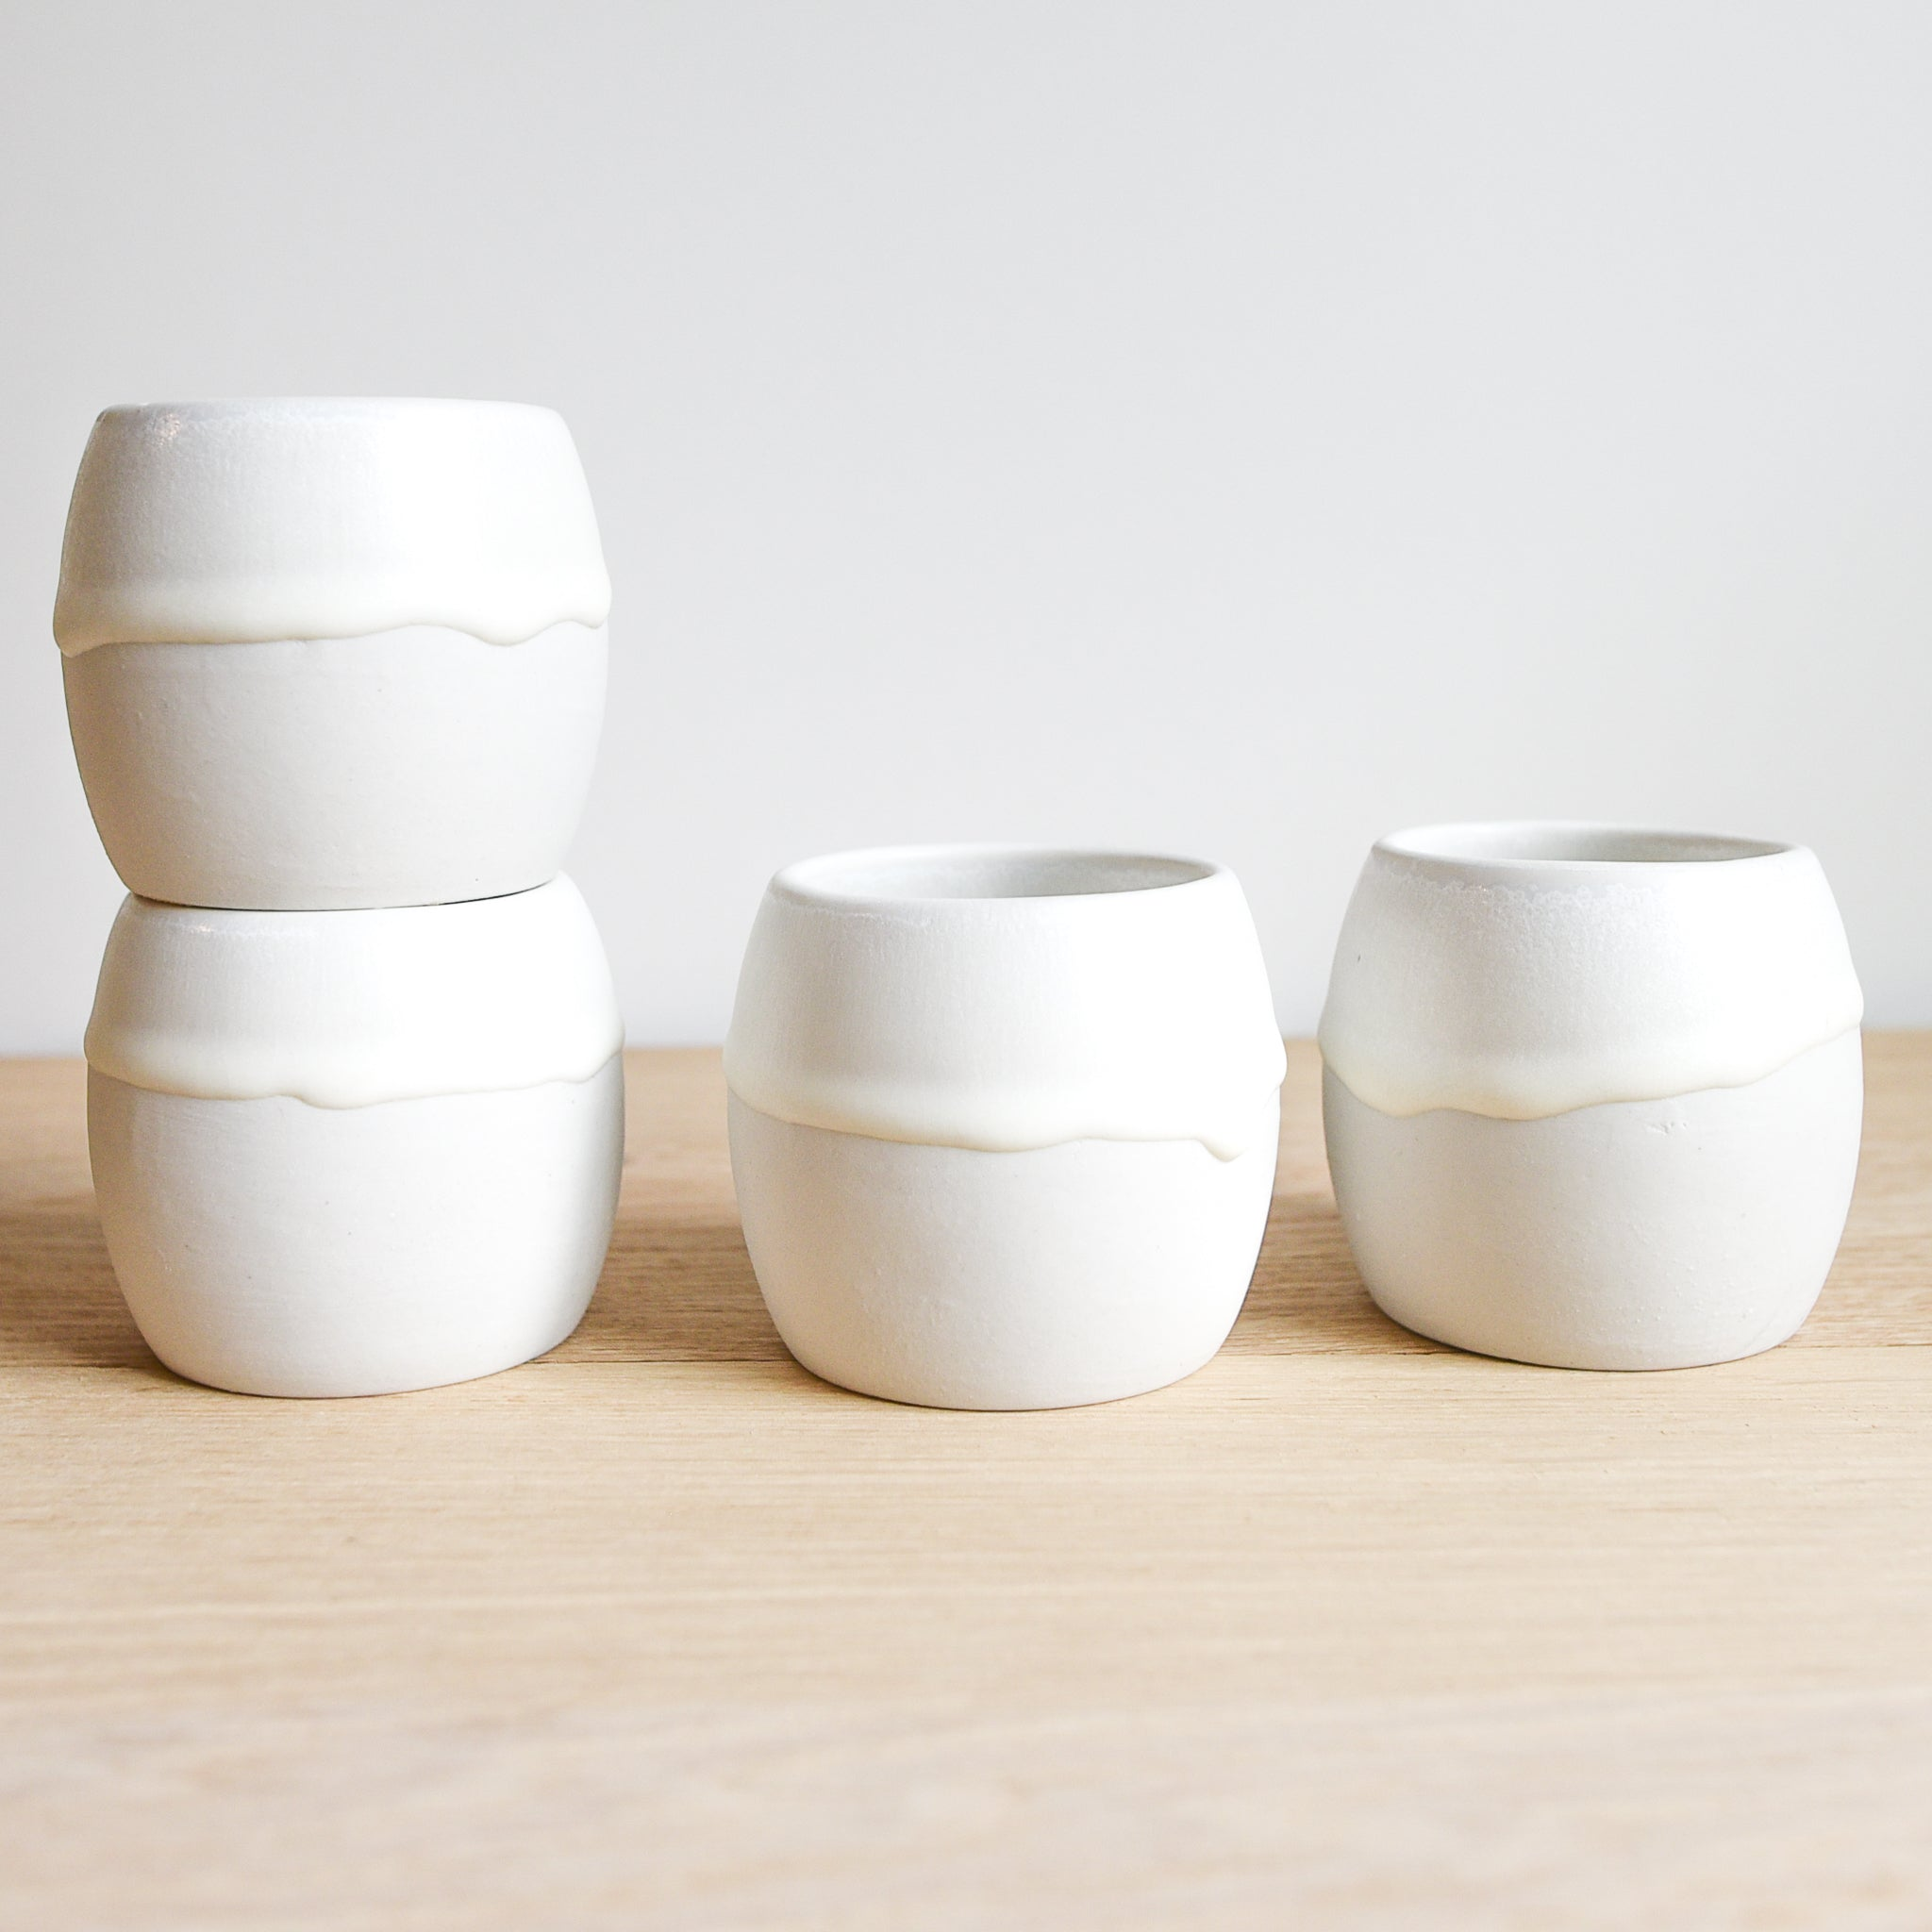 A set of four white glazed cups made of stoneware on a light wood table.